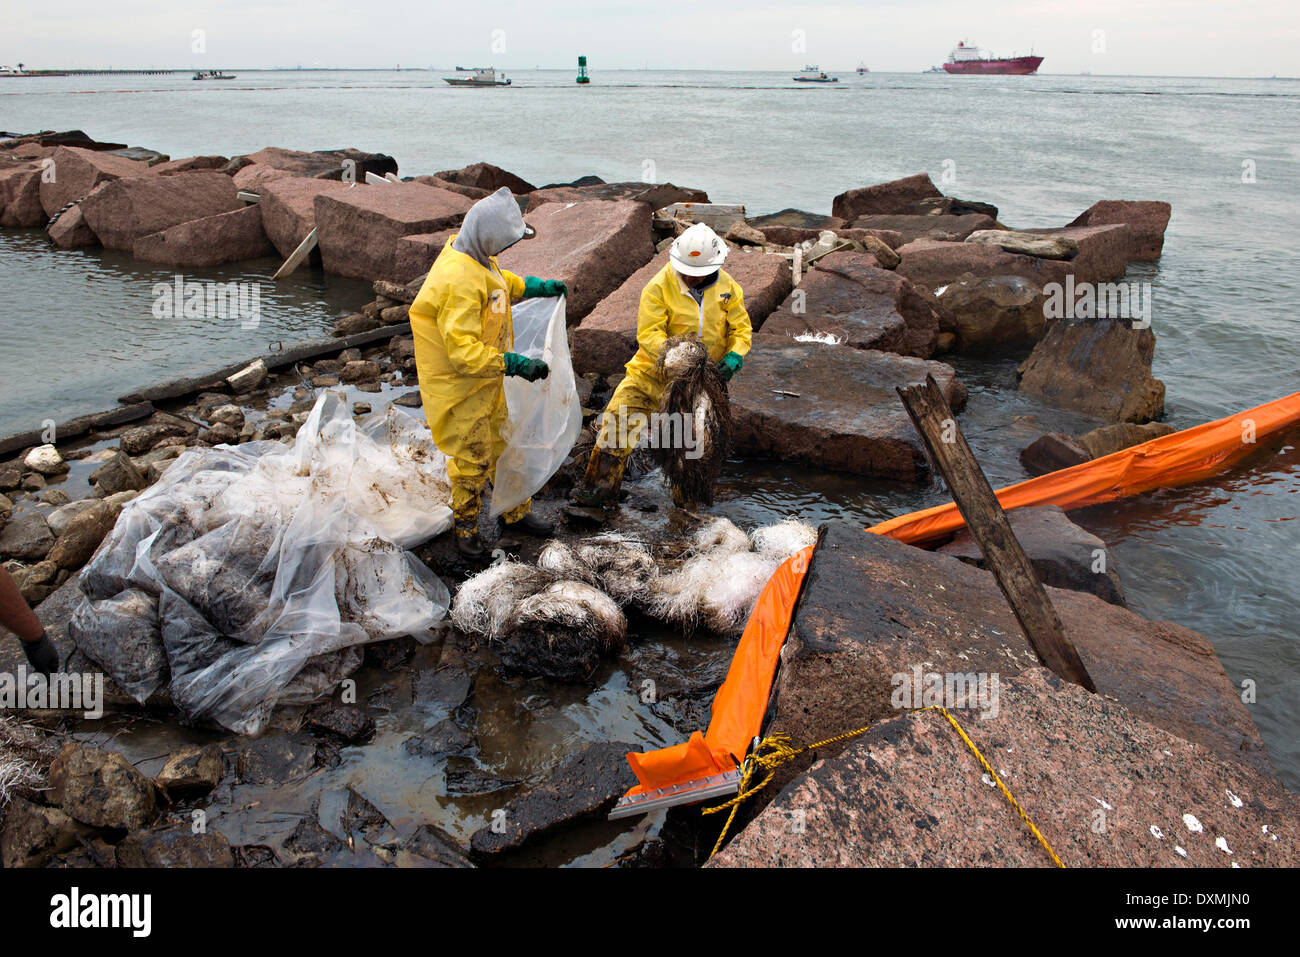 Cleanup crews fill bags with oiled sand and debris after a collision between a bulk carrier and the barge near Texas City Dike spilling oil into an environmentally sensitive area at Big Reef March 26, 2014 in Galveston, Texas. - Stock Image